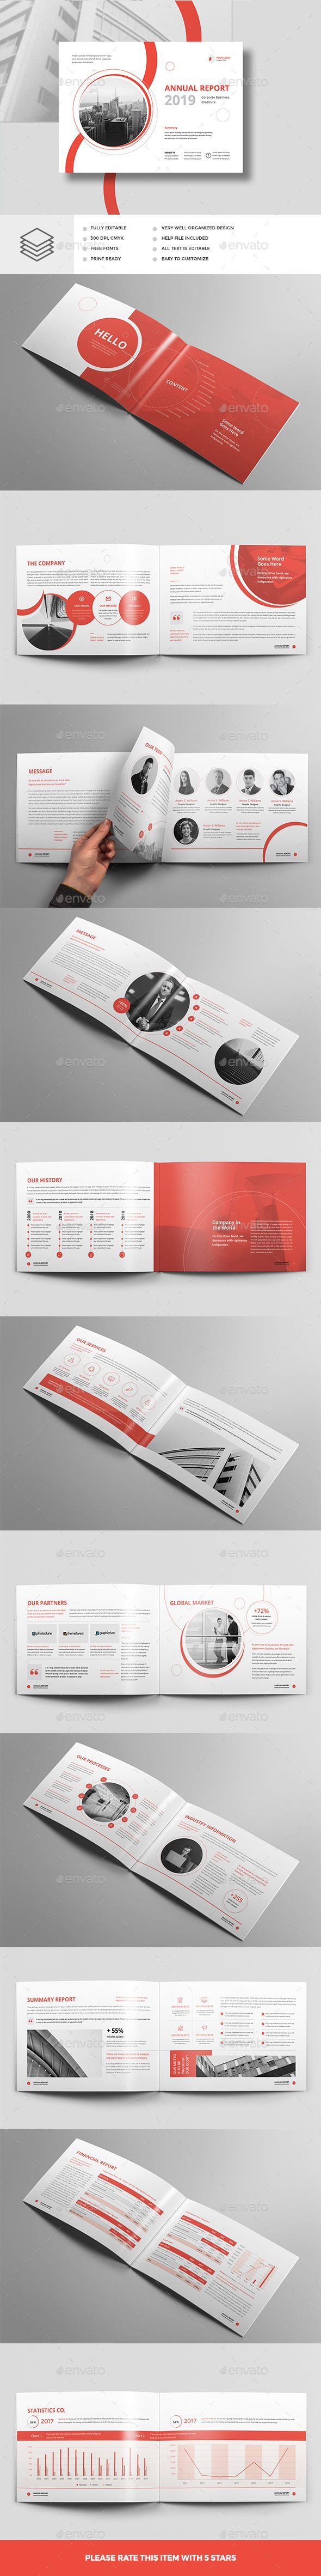 Annual Report Landscape A4 — InDesign INDD #identity #indesign templates • D...